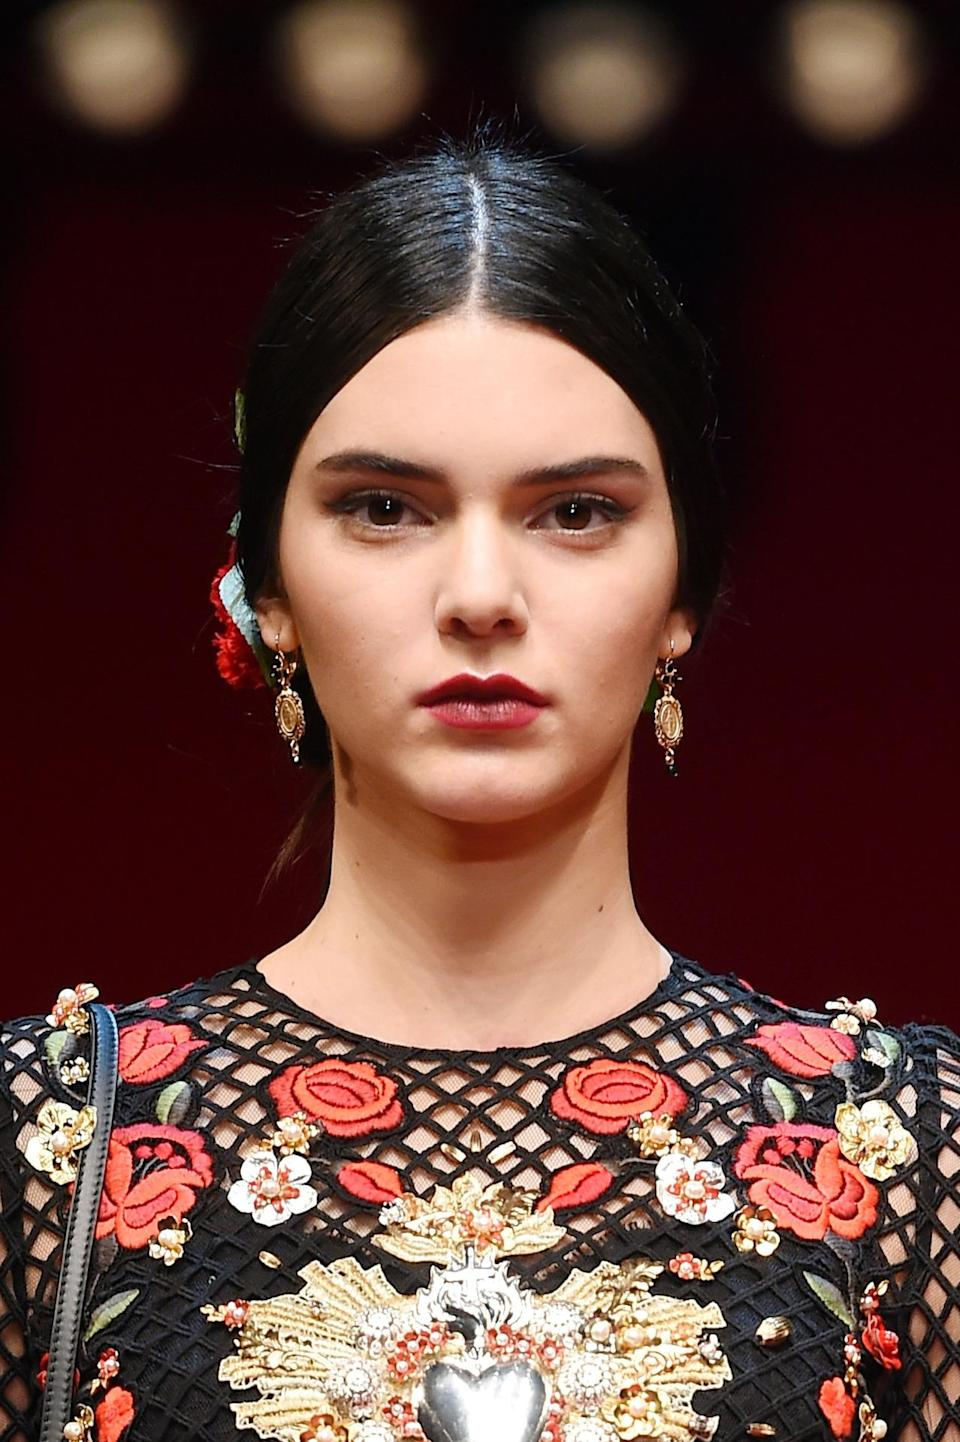 <p>At Dolce & Gabbana Spring 2015 in Milan, Jenner channeled Spanish bullfighters with cherry red lips and a tight centerpart chignon. <i>(Photo: Getty Images)</i></p>